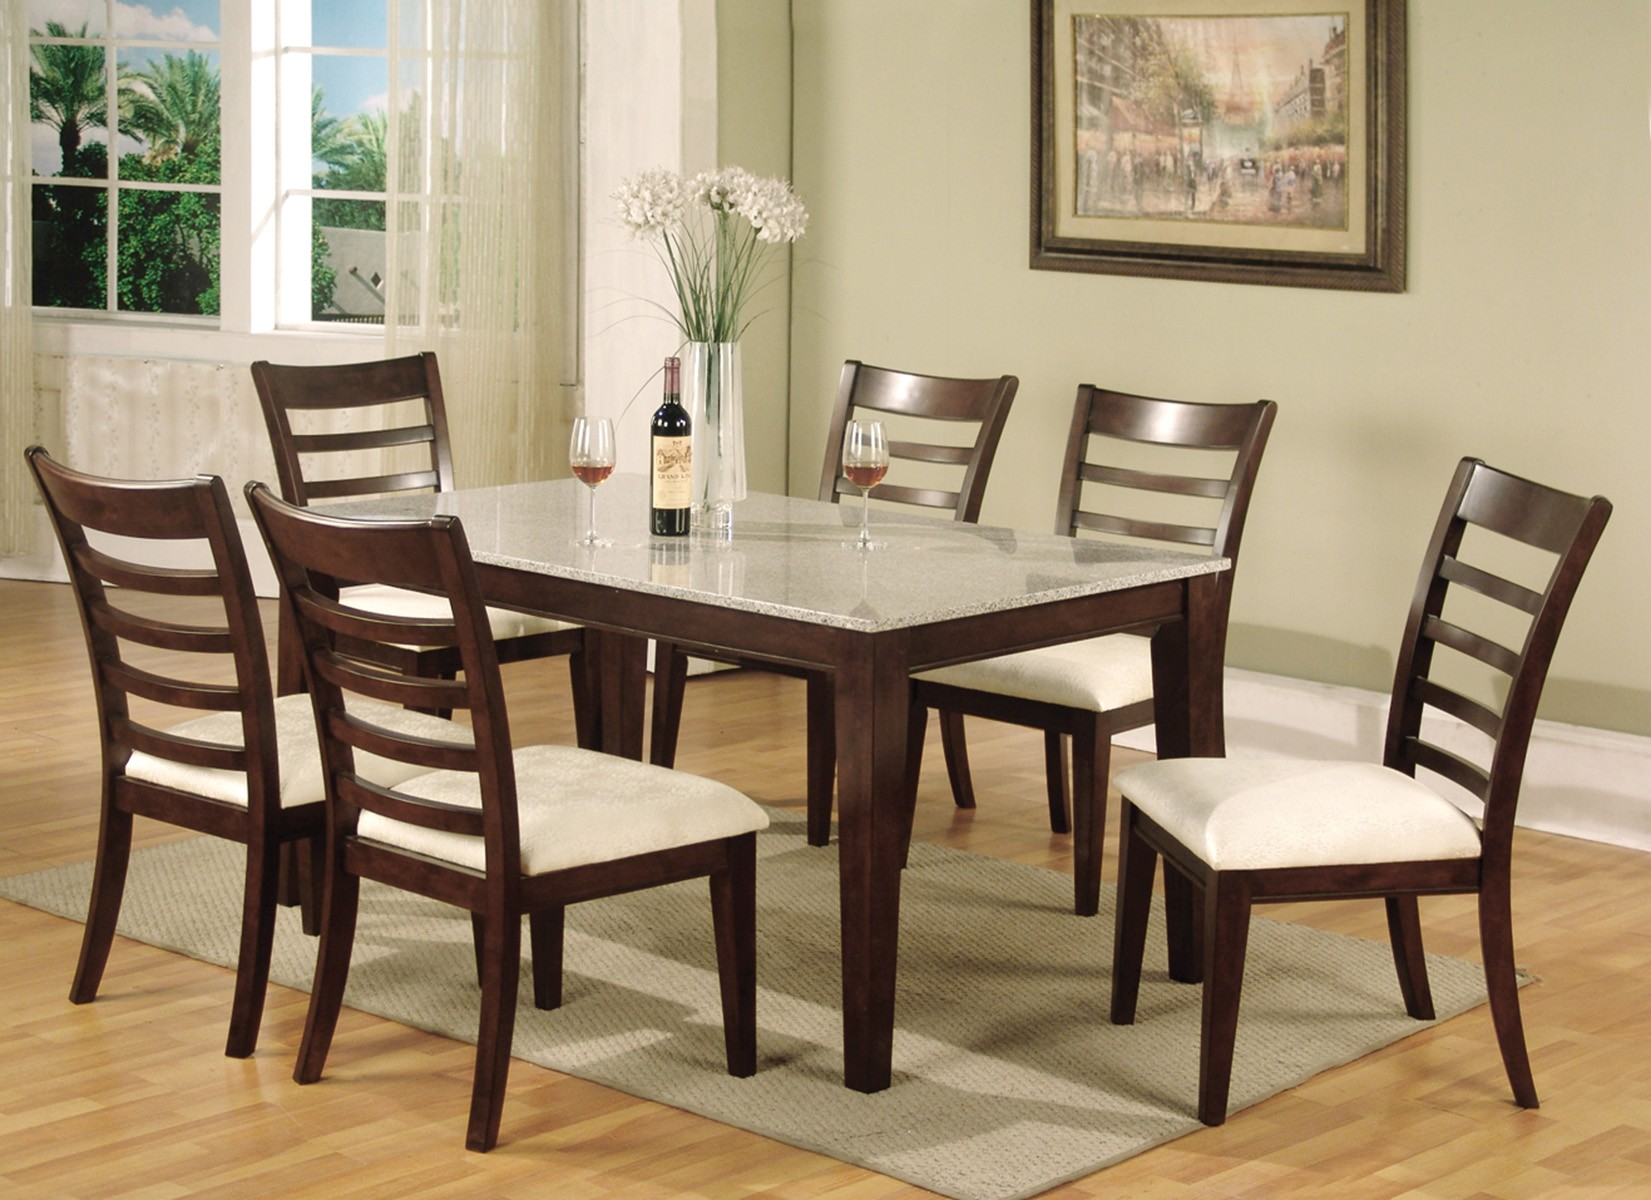 Granite Dining Table Ideas Royals Courage Granite Dining Table Type